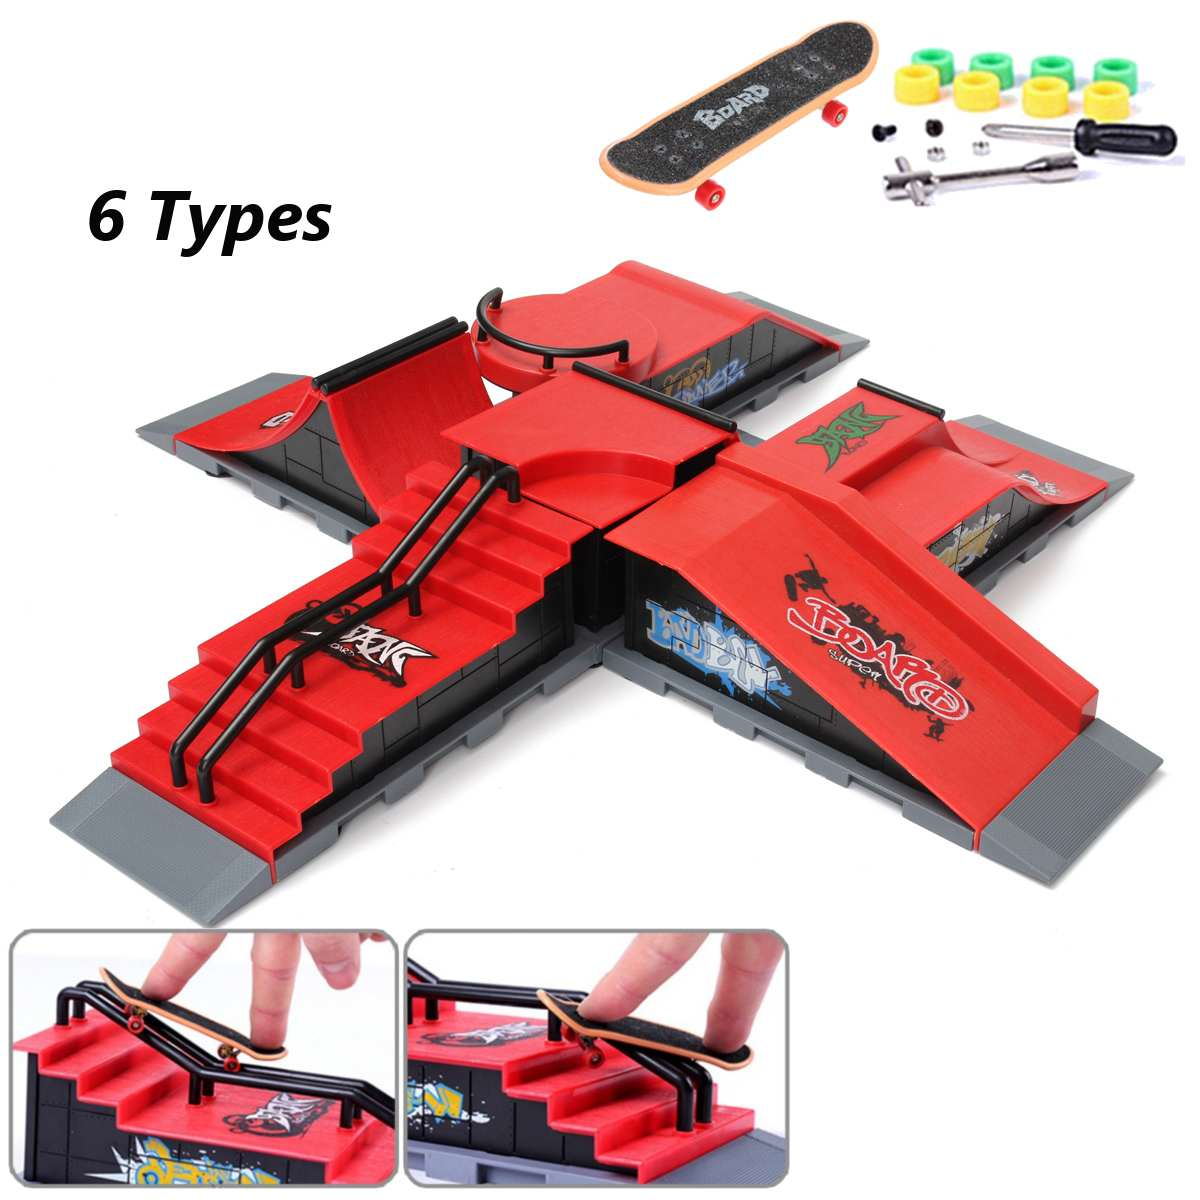 1x Finger Skateboard Park Skate Park Ramp Parts For Tech Deck Fingerboard For Ultimate Parks Birthday Toy Gifts For Children